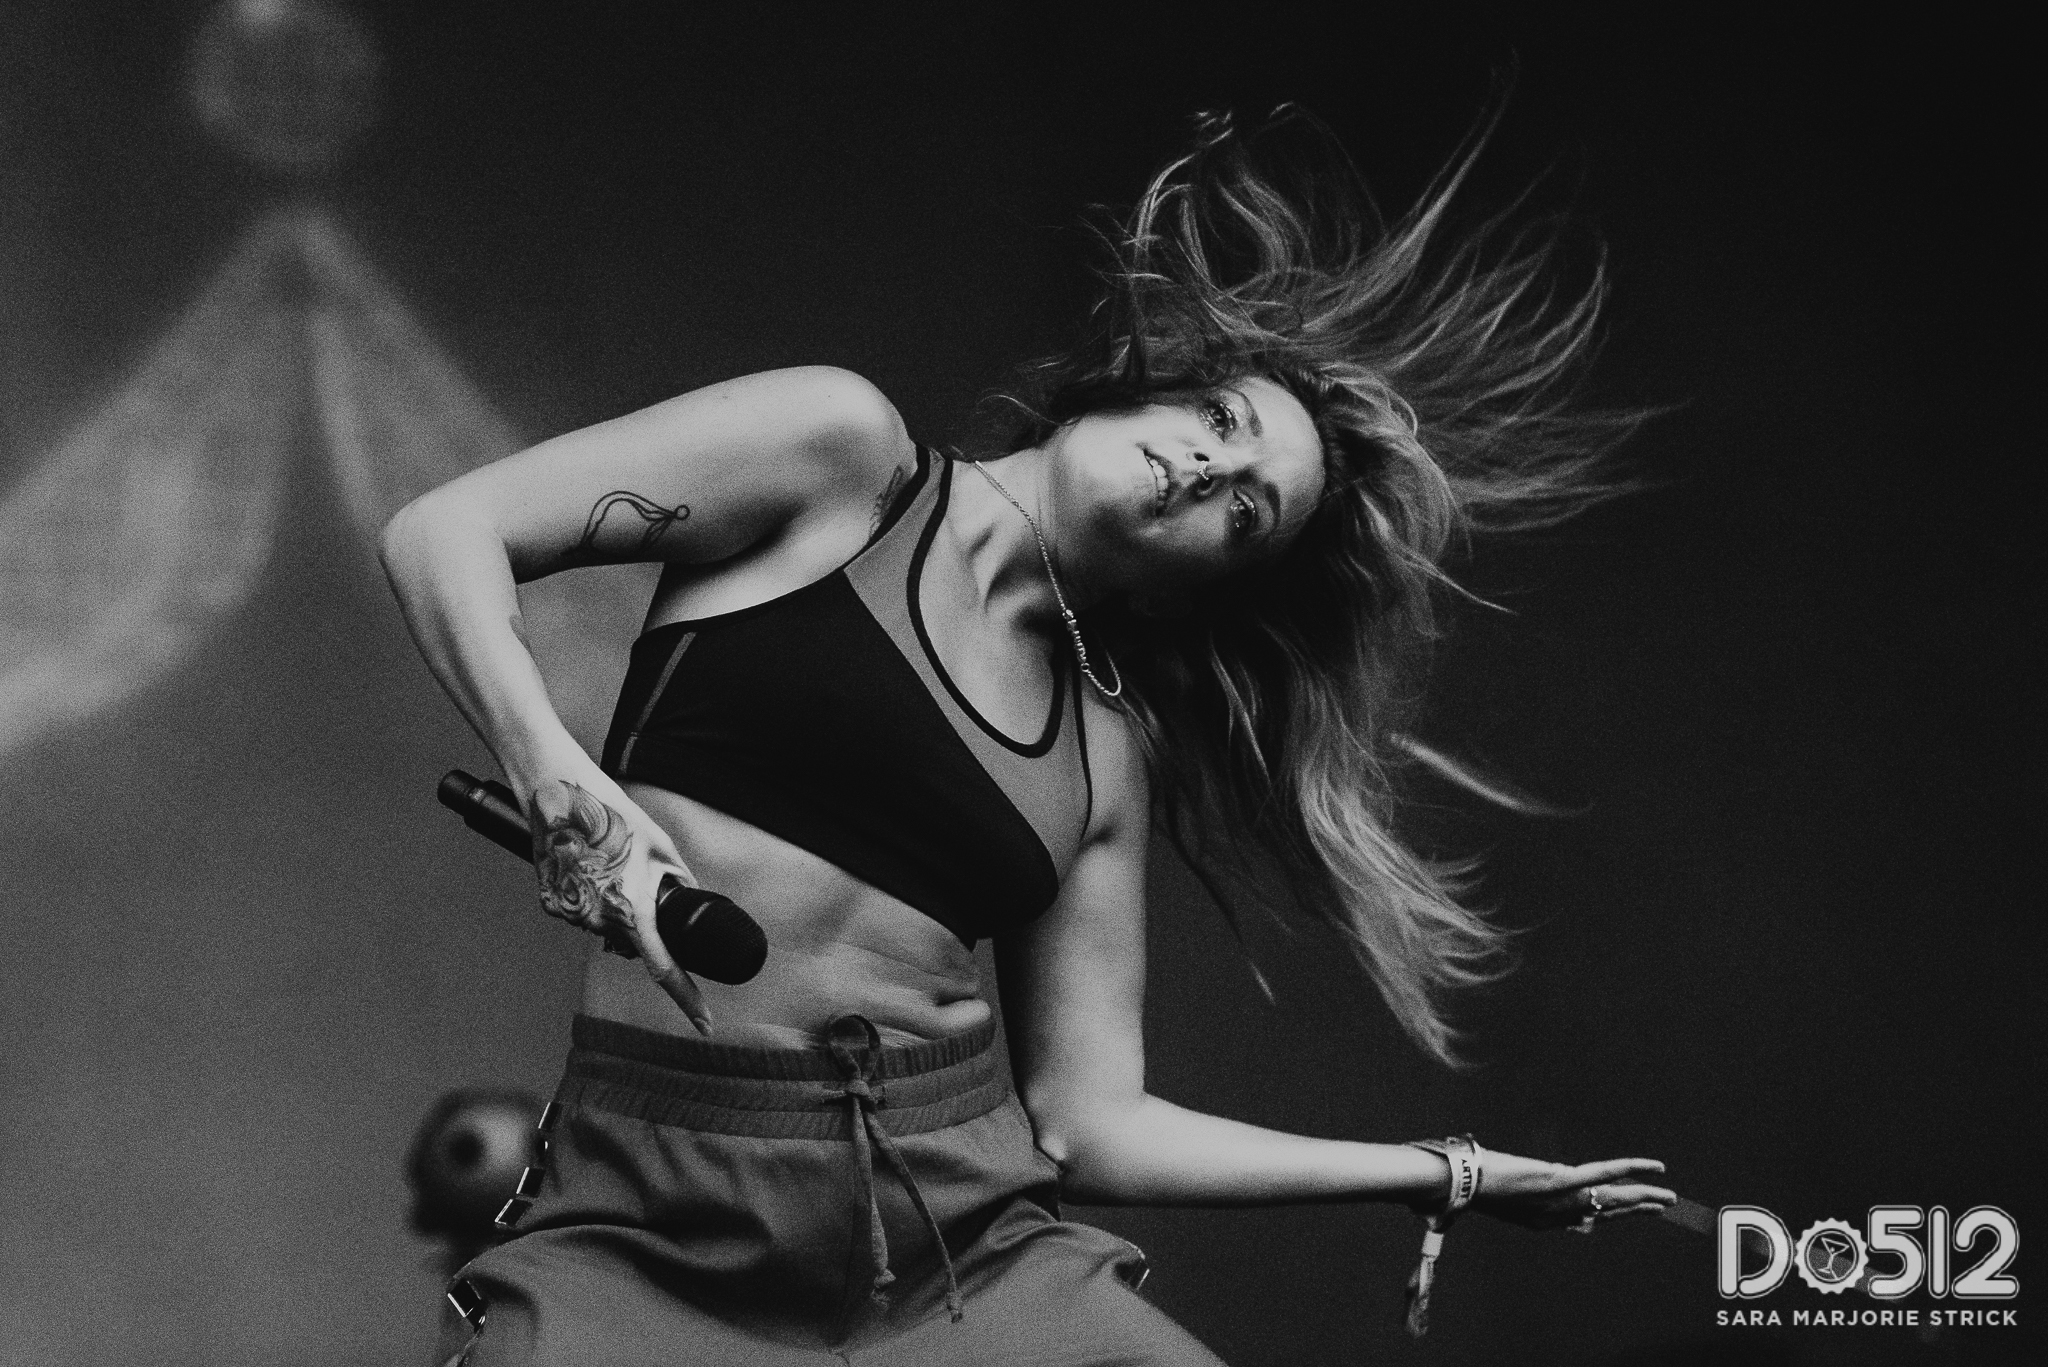 sarastrick_acl2017wk2_day2_tovelo04.jpg